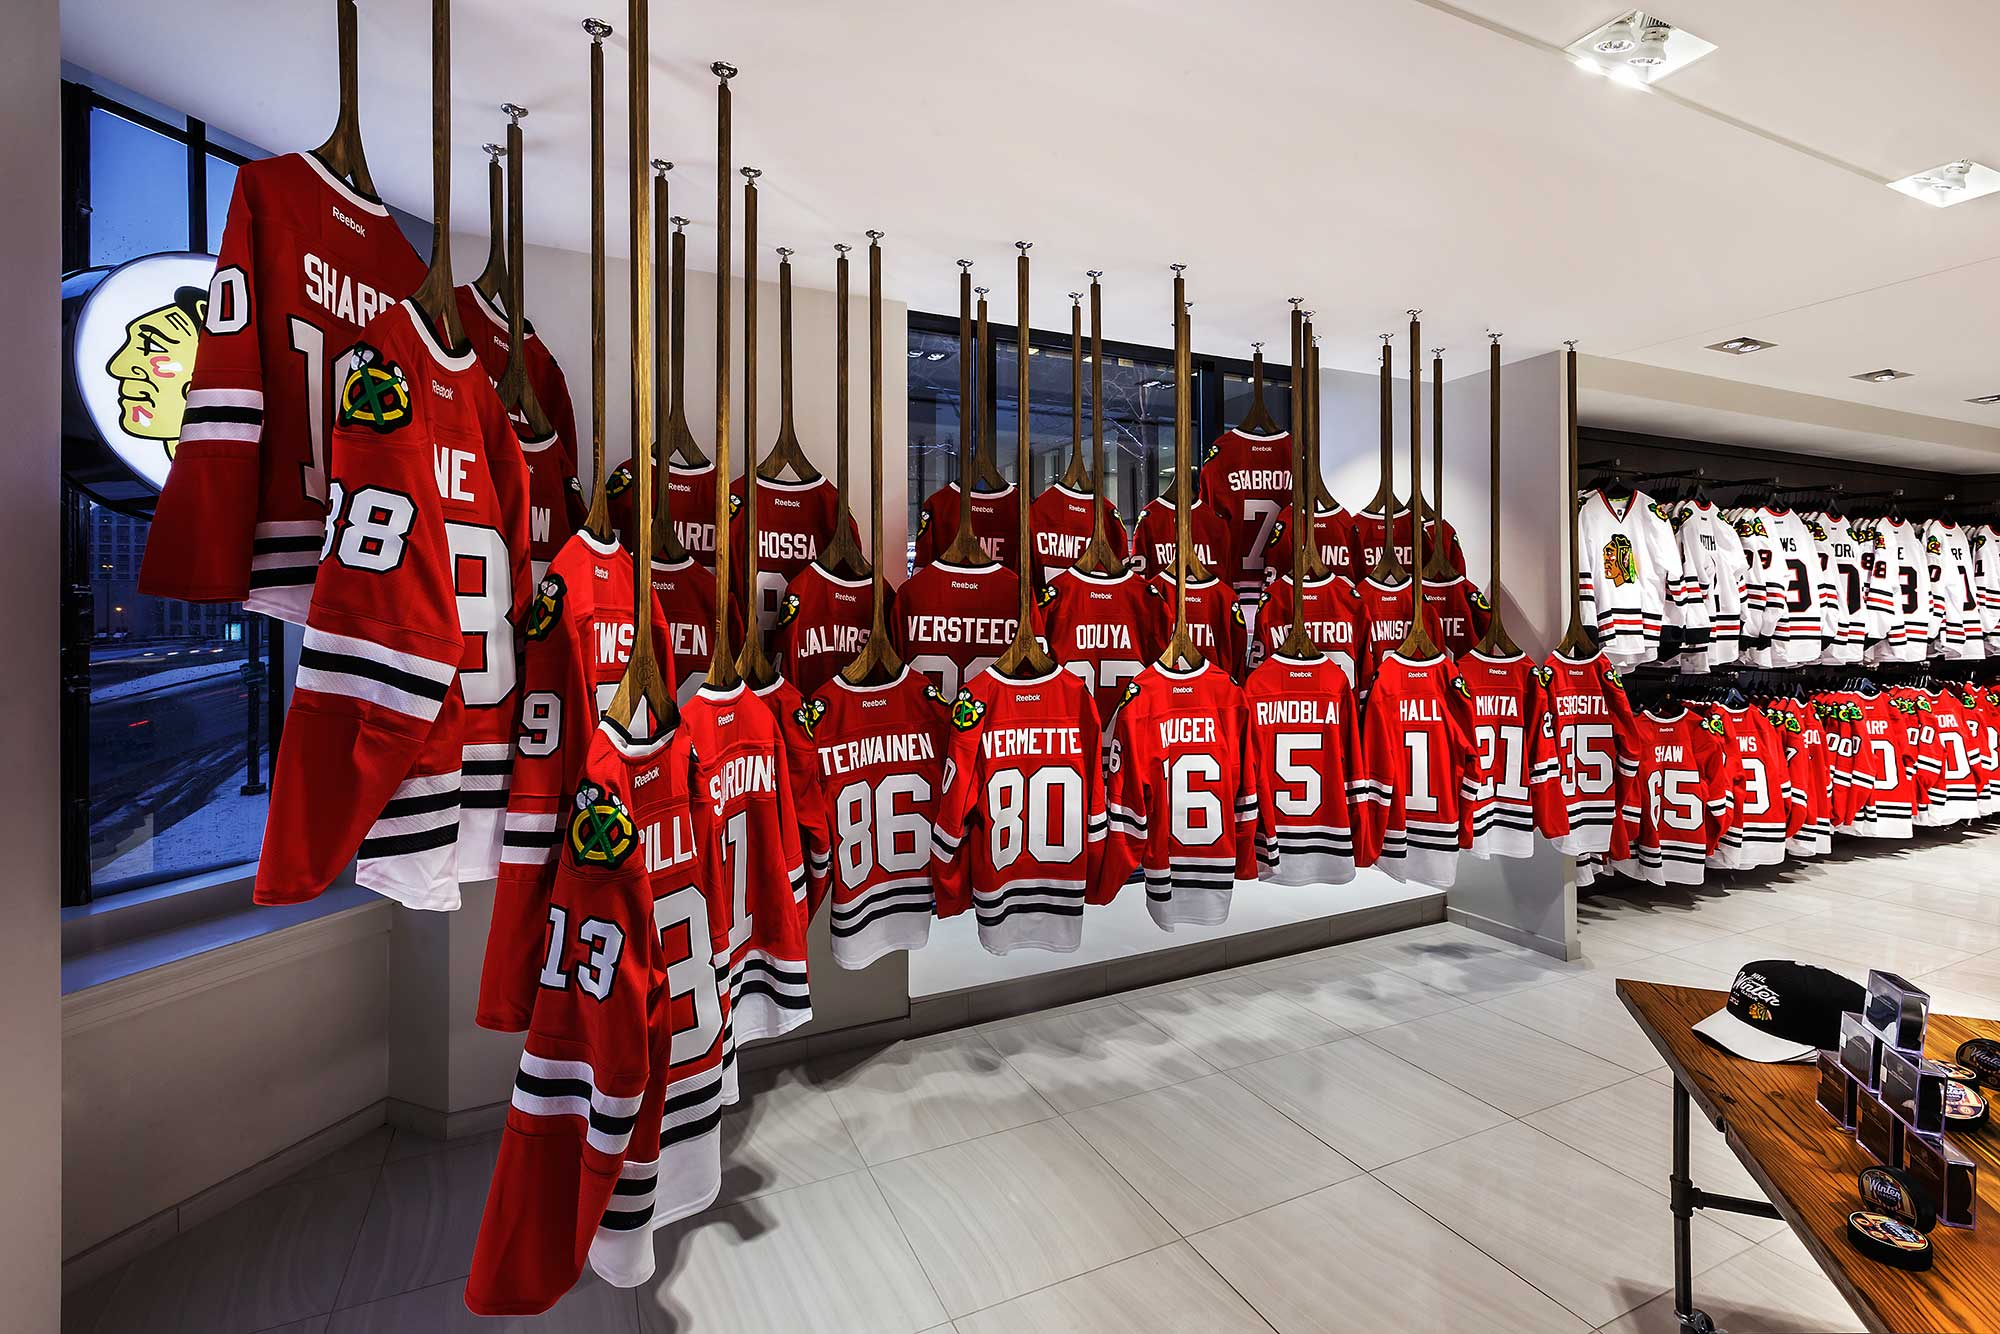 Interior of store with jerseys on display